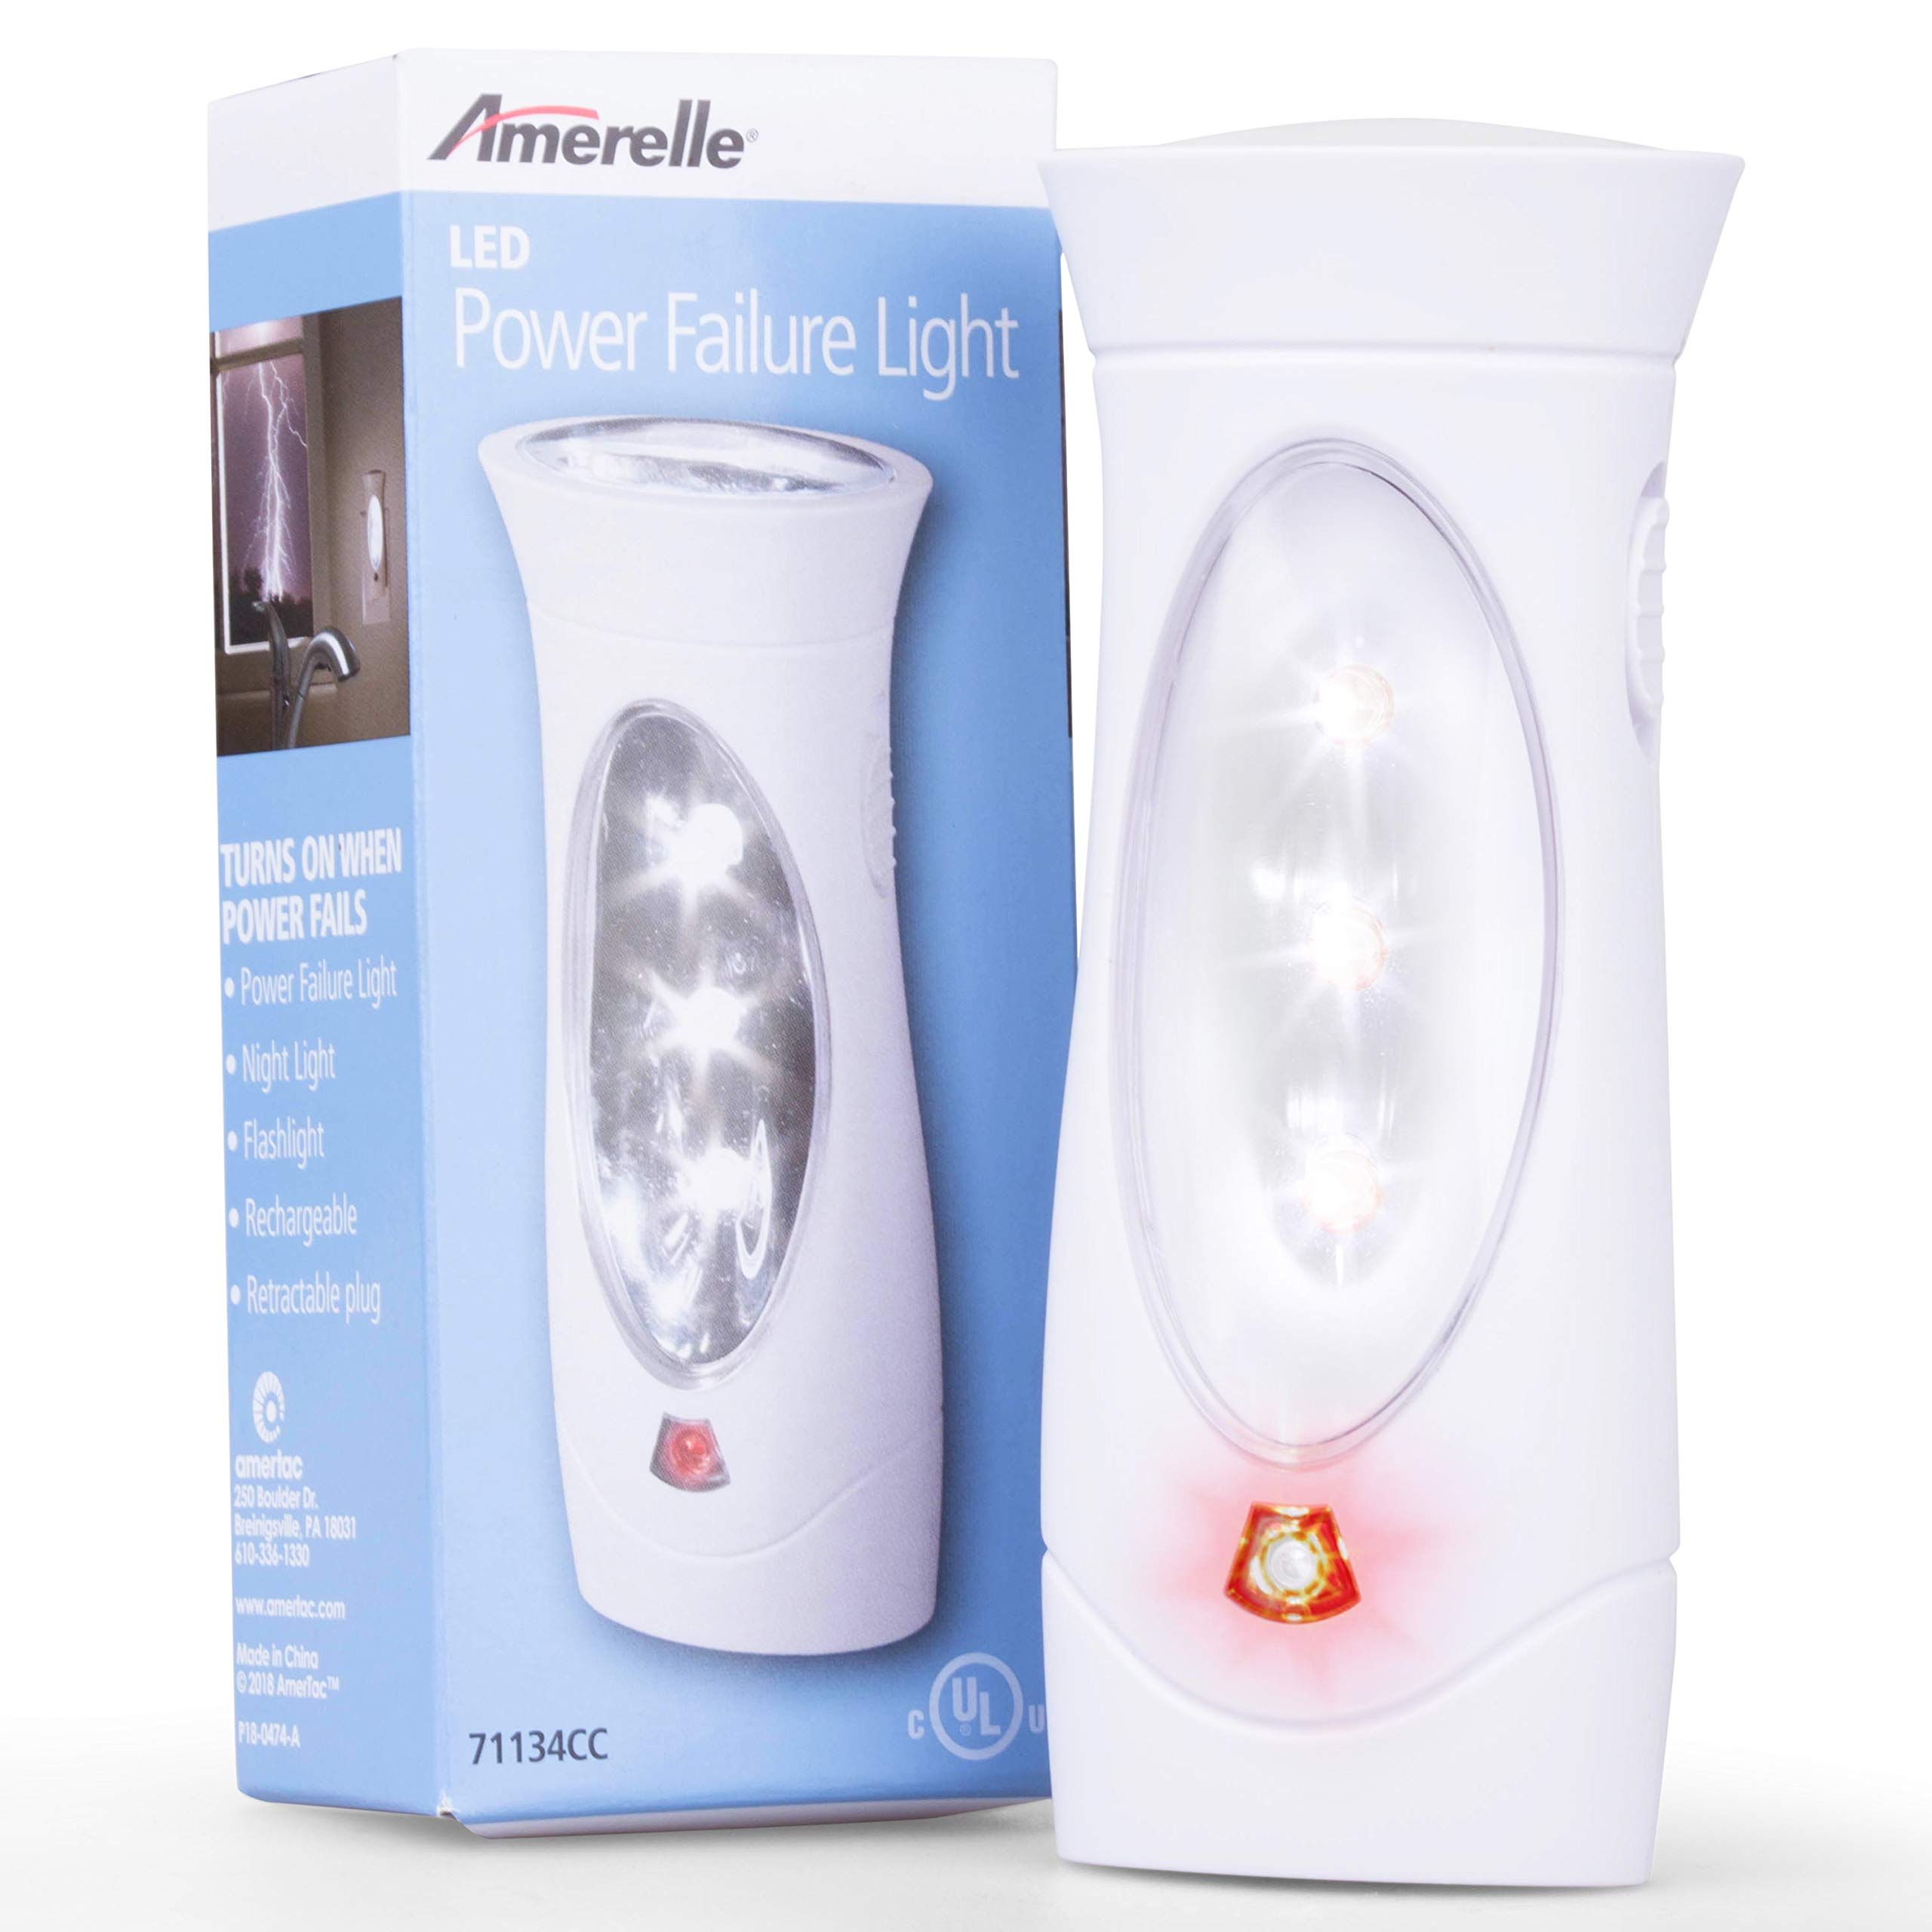 Amerelle Emergency Lights For Home by Amertac, 6 Pack - Plug-In Emergency Preparedness Power Failure Light and Flashlight, Automatically Lights When the Power Fails - Portable, Rechargeable - 71134CC by Amerelle